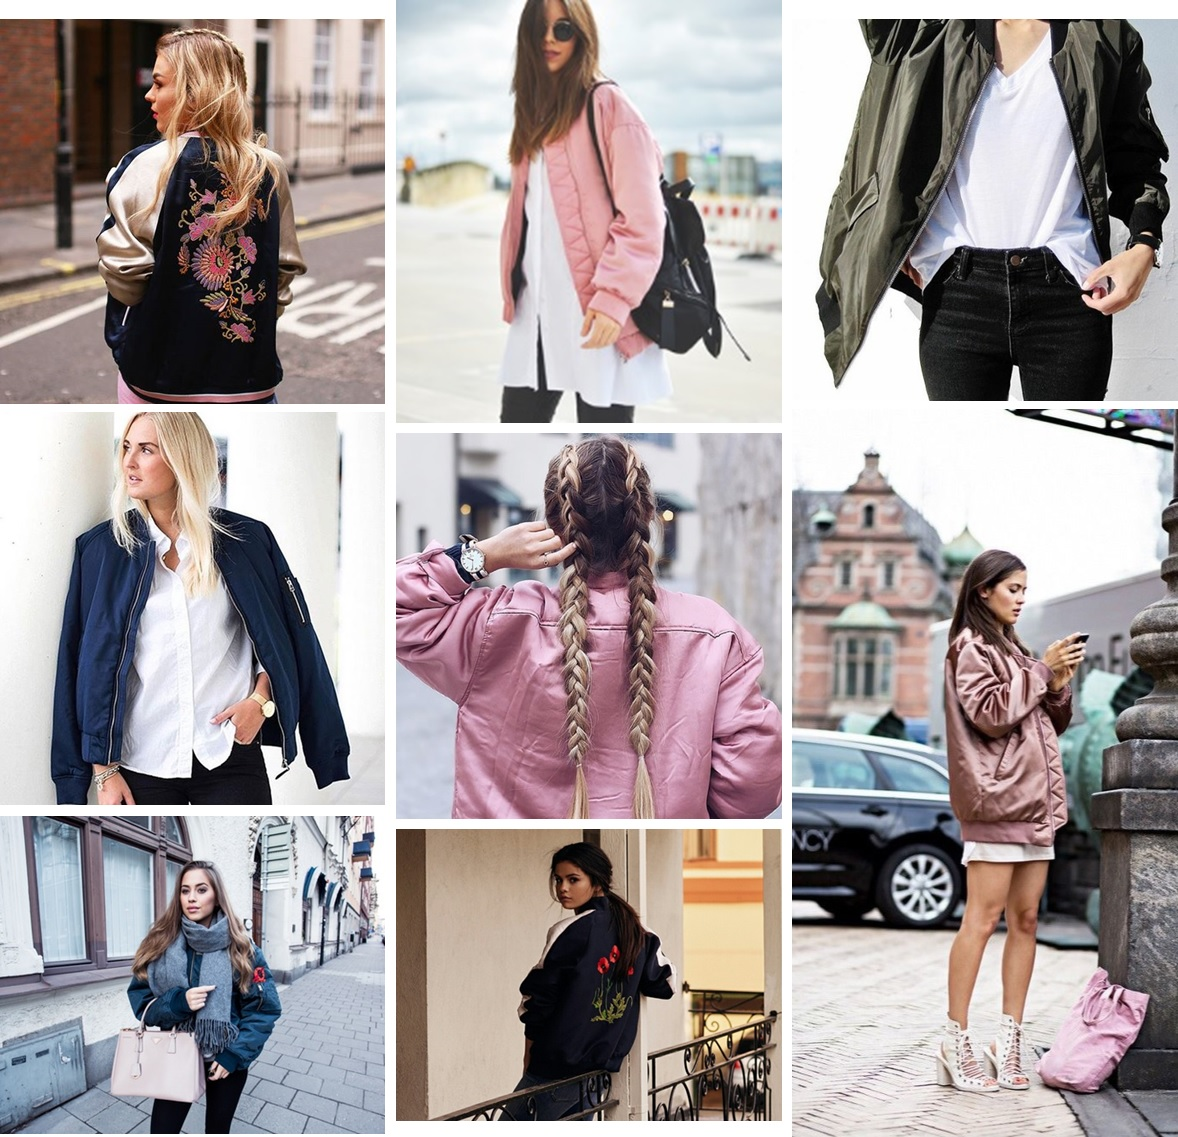 inspiration | The bomber jacket